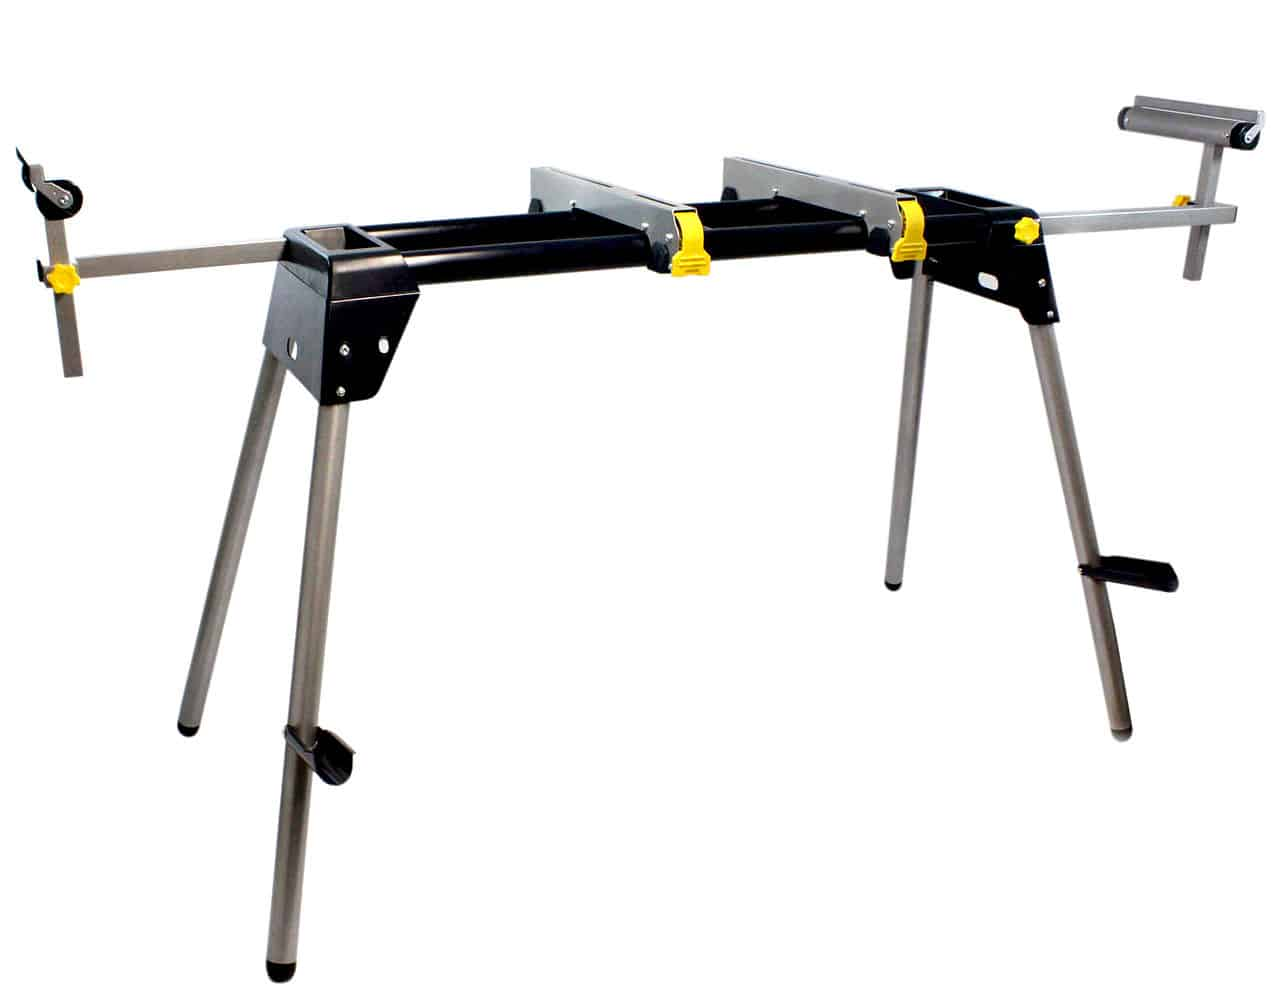 Keter Pro Series Folding Portable Work Table Miter Saw Stand